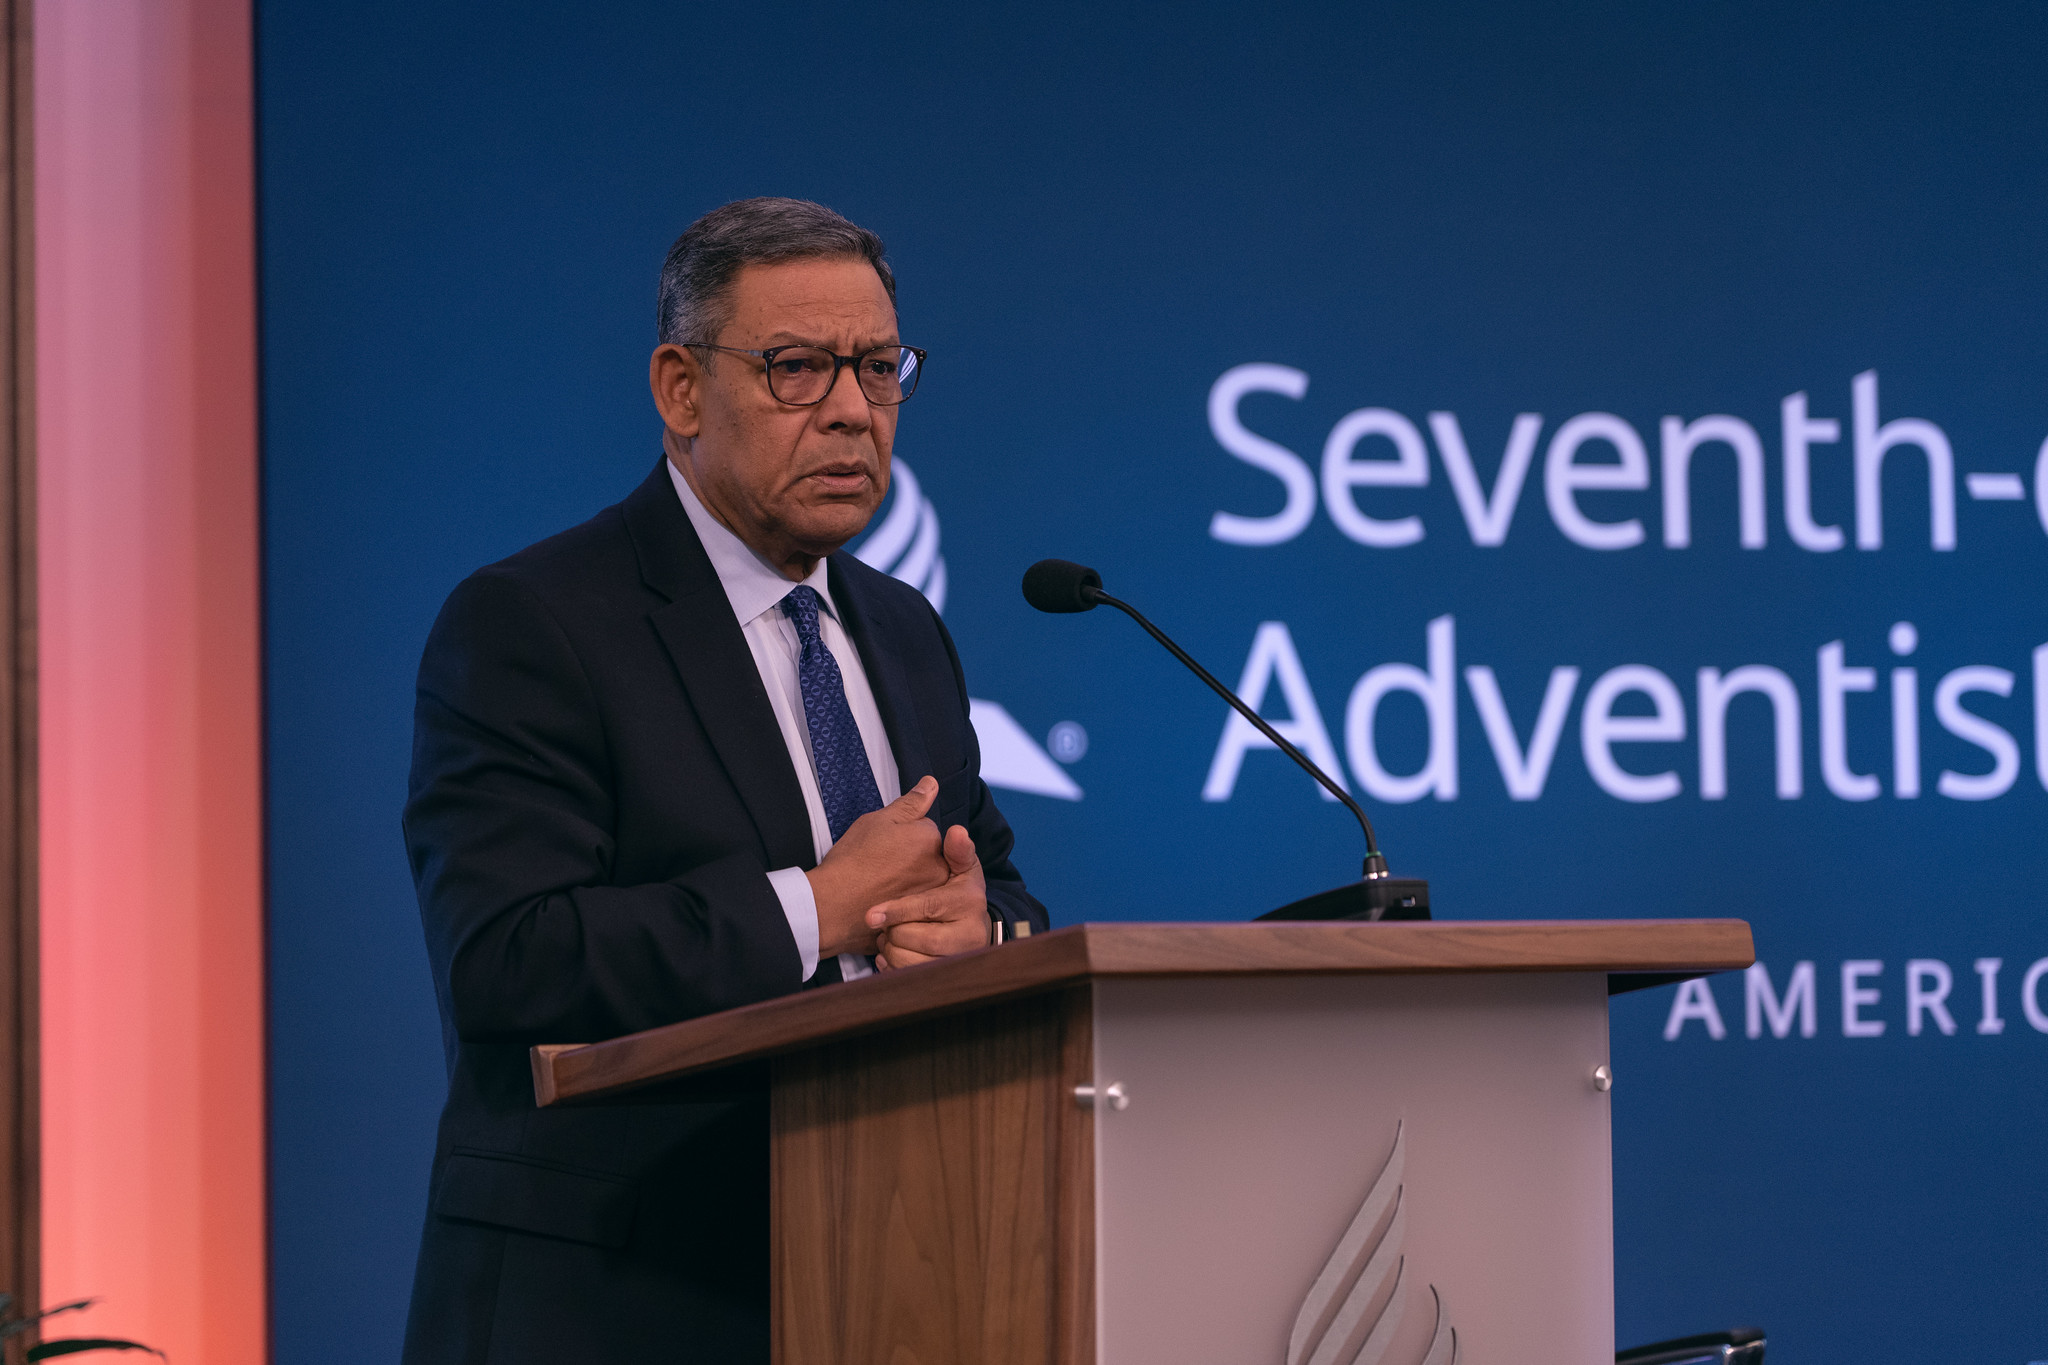 Juan Prestol-Puesán, treasurer of the General Conference, outlines five actions that have taken place over a nearly 30-year period that have led to the financial parity discussion in 2019.